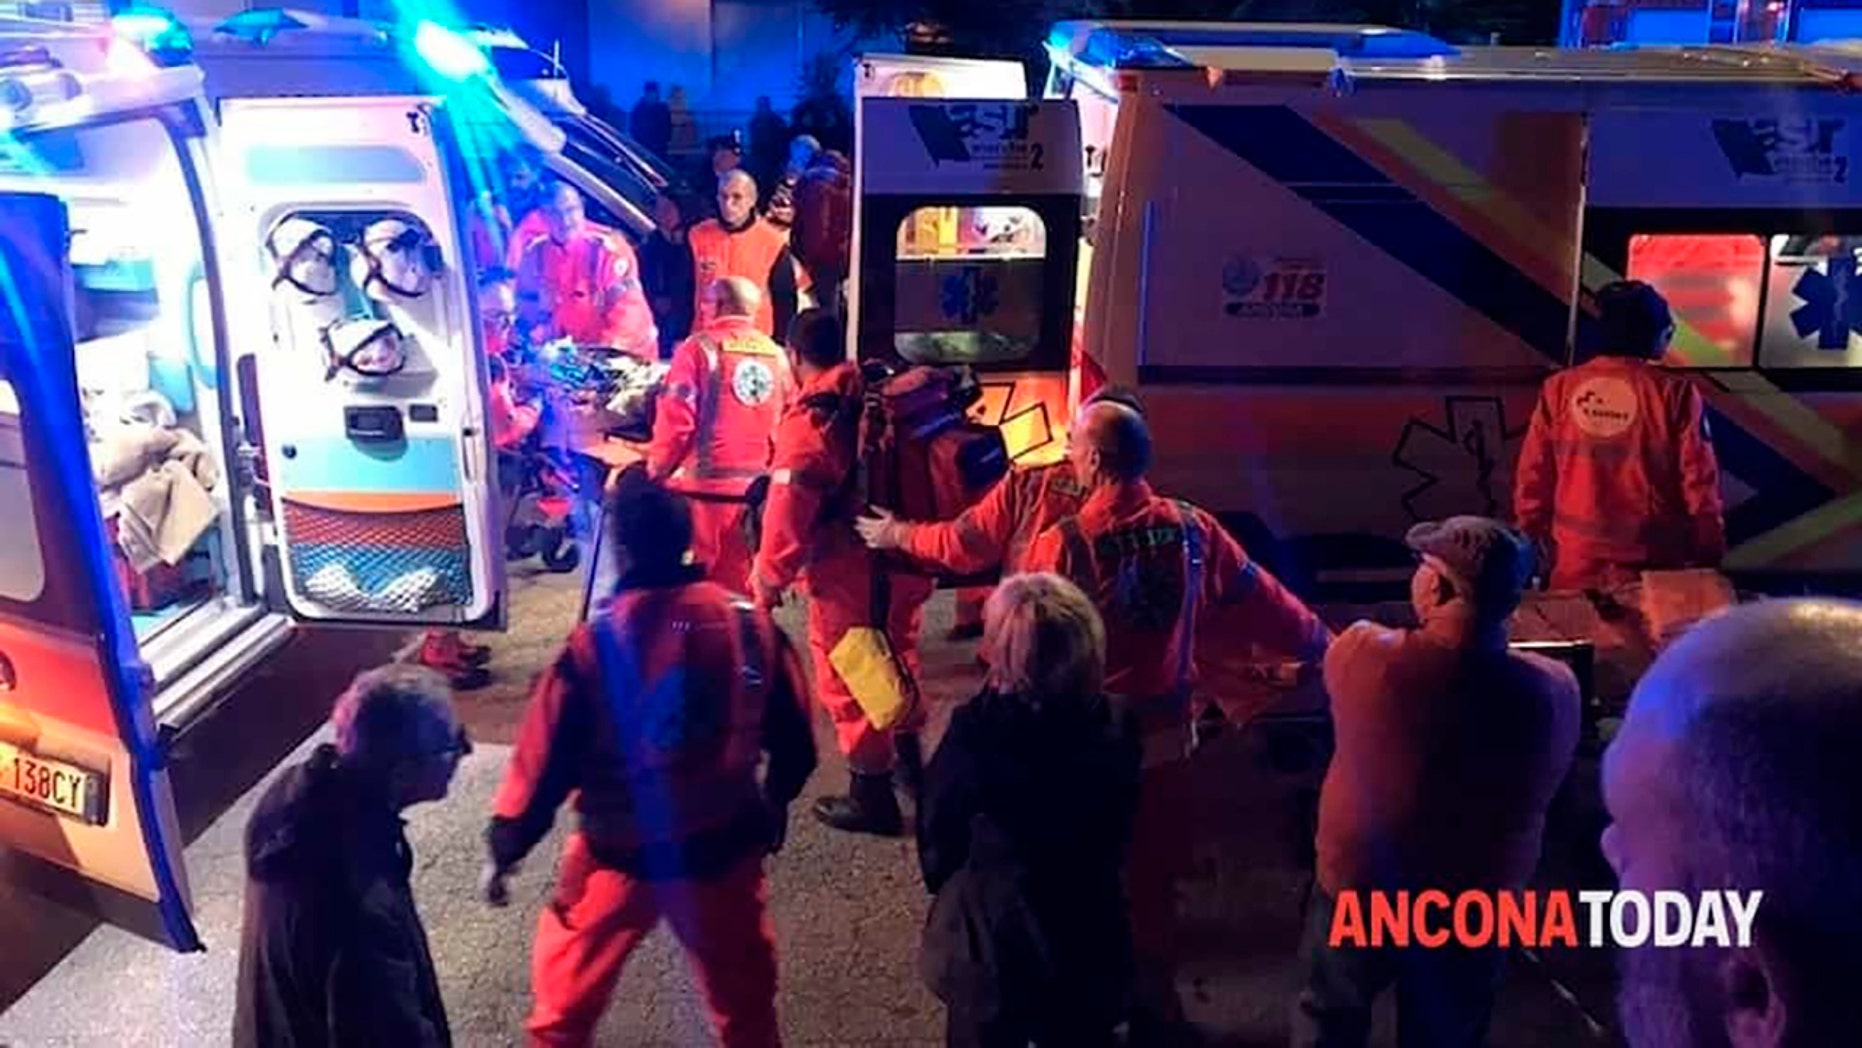 "Rescue workers assist injured persons in front of a nightclub in Corinaldo, central Italy, on early Saturday, December 8, 201<div class=""e3lan e3lan-in-post1""><script async src=""//pagead2.googlesyndication.com/pagead/js/adsbygoogle.js""></script>